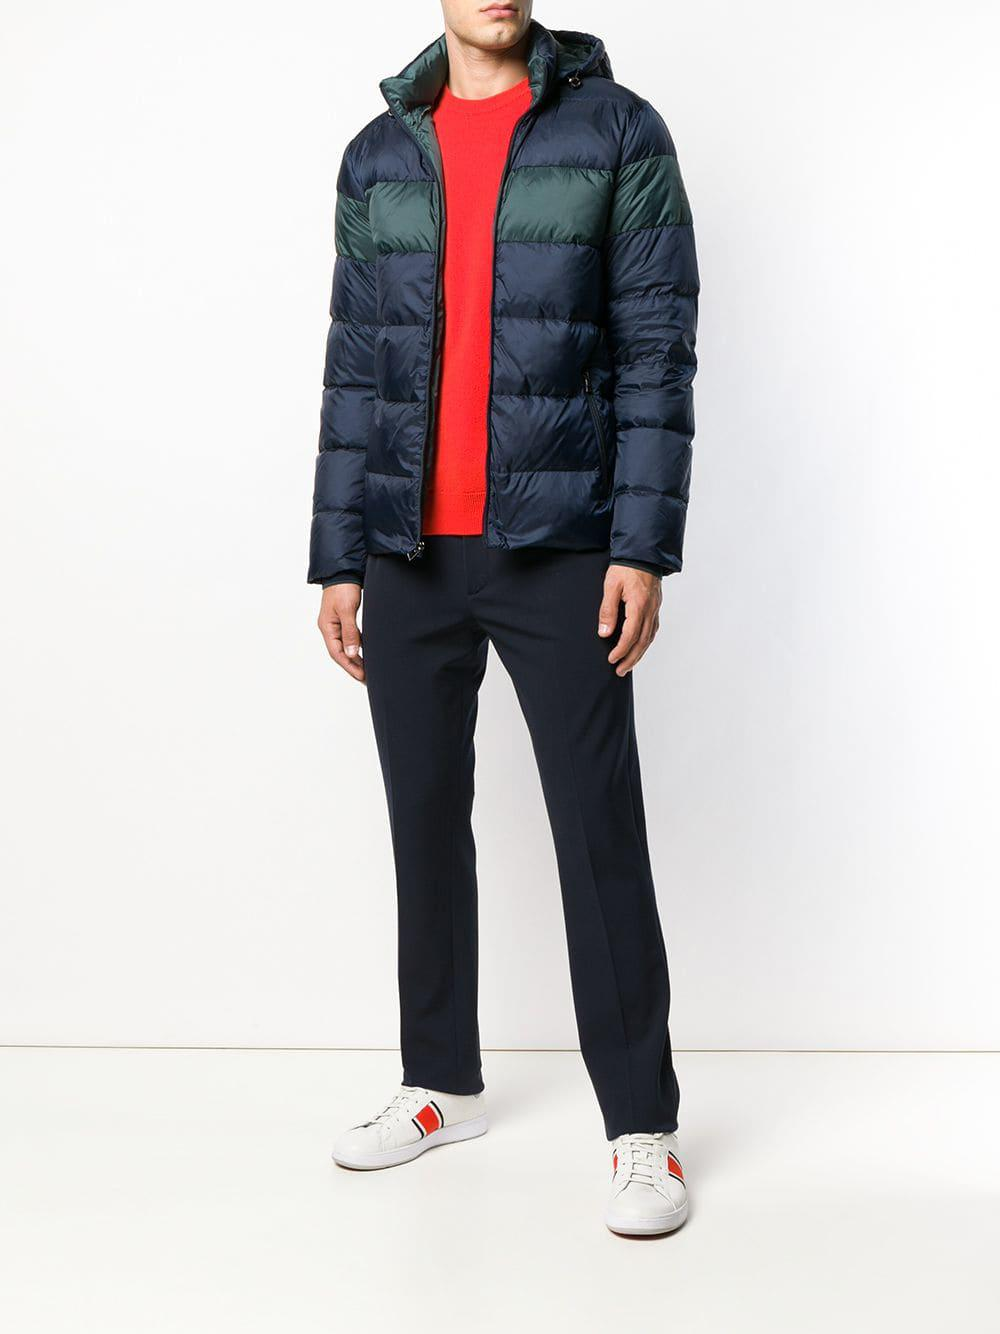 5d41ad3acf2c Lyst - Michael Kors Hooded Padded Jacket in Blue for Men